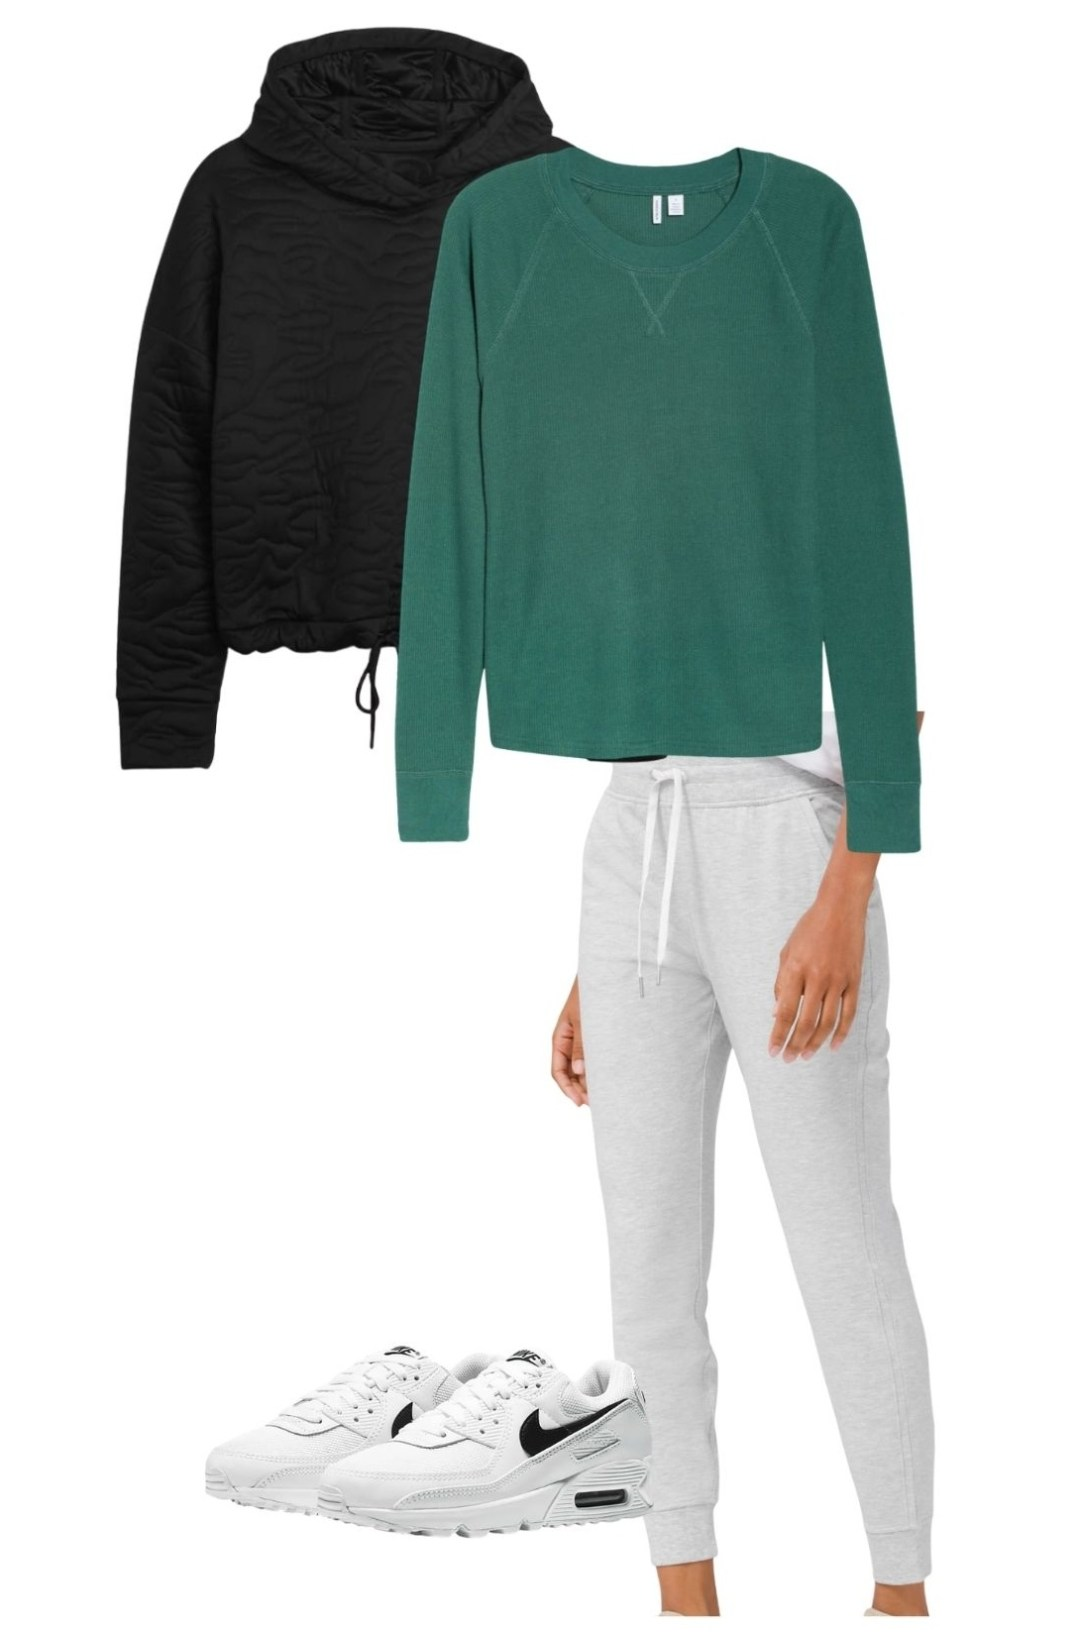 Cute Athleisure Outfit Ideas